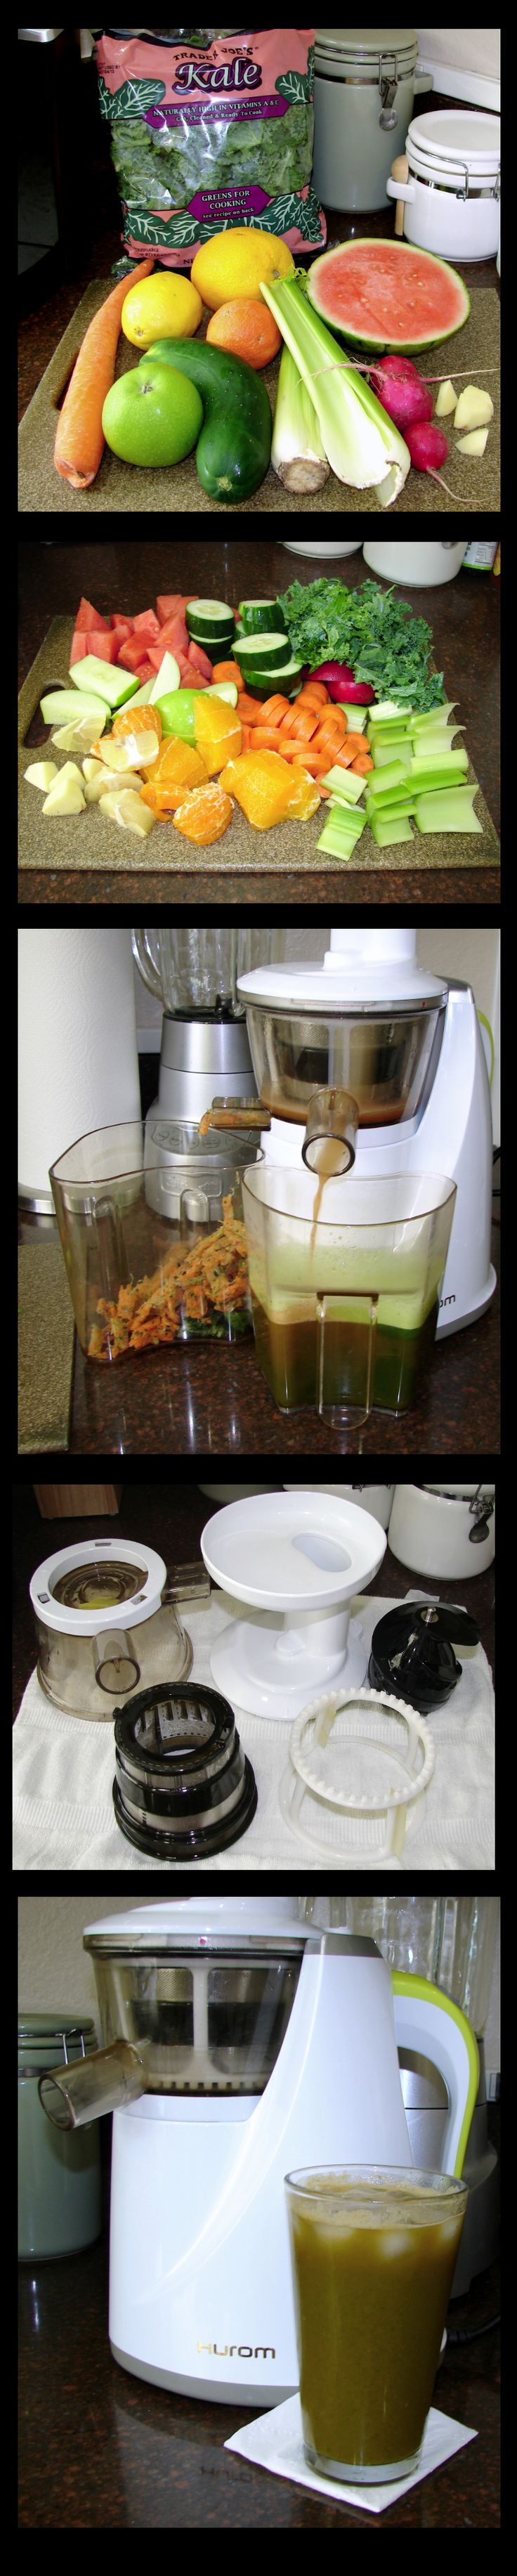 Hurom Slow Juicer Kale : 1000+ images about Best Juicer for Kale on Pinterest Kale, Apples and Best juicing recipes